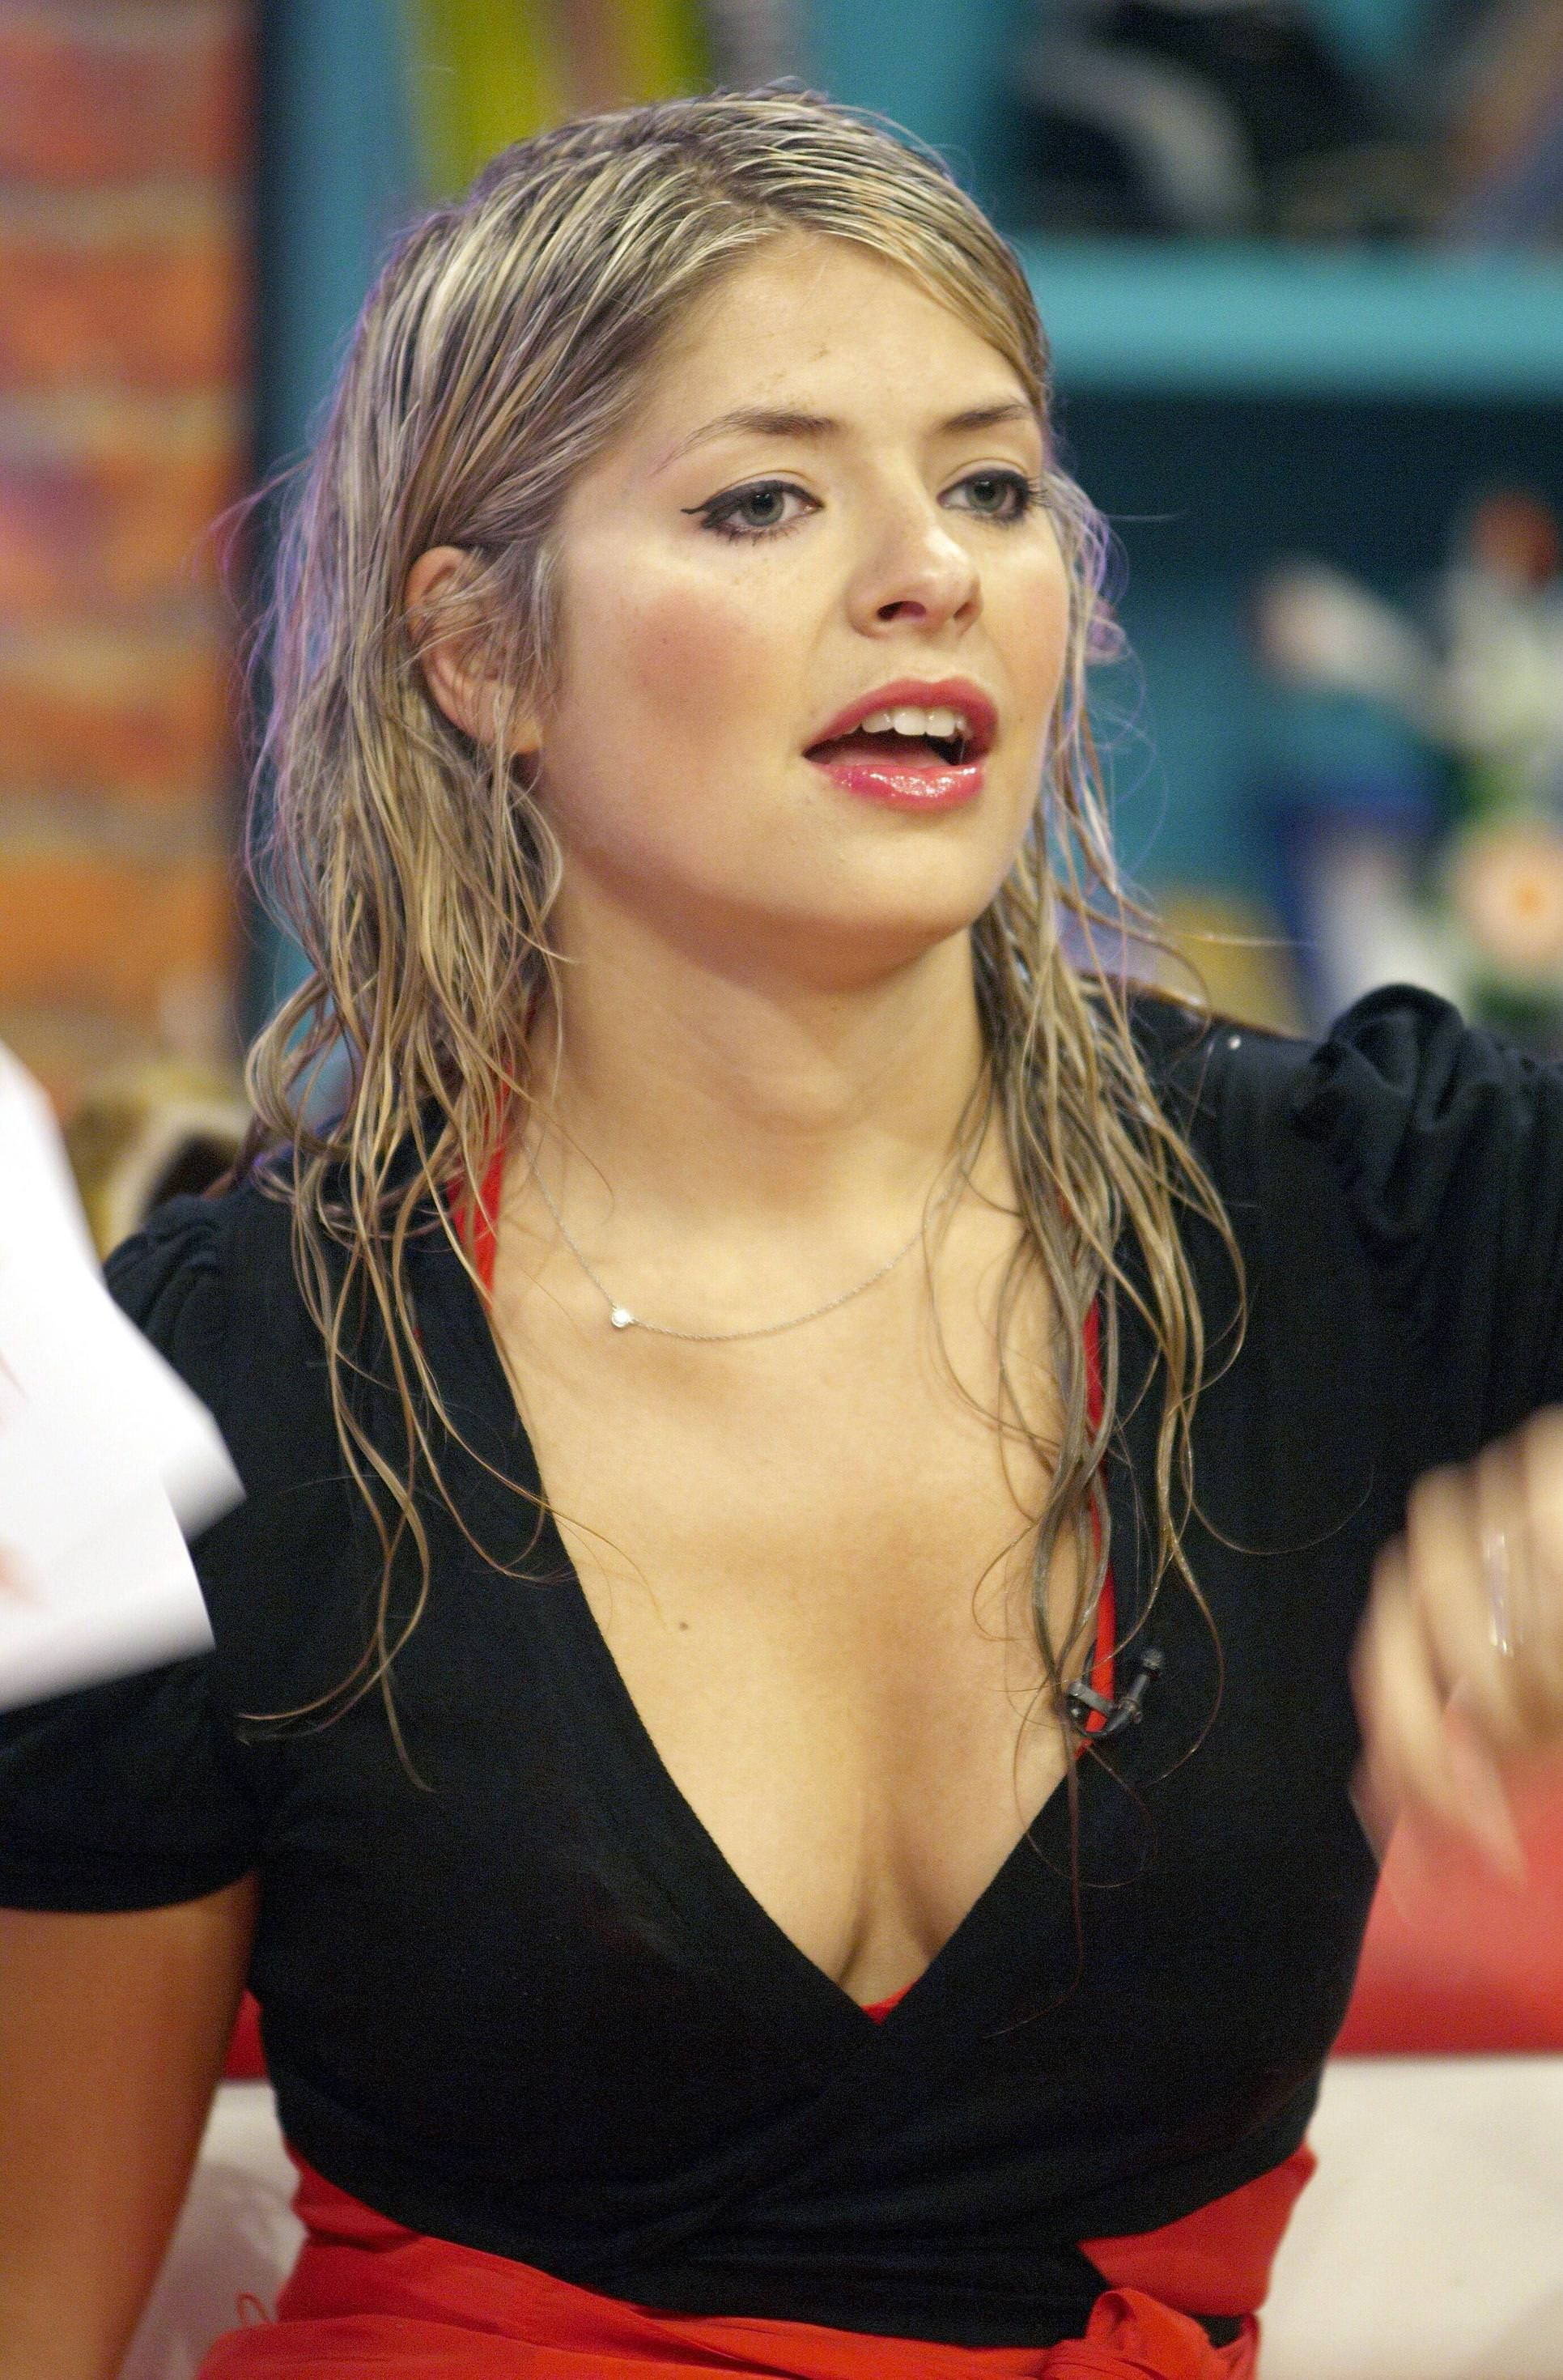 Cleavage Emma Holley nudes (94 photos), Pussy, Fappening, Instagram, cameltoe 2006